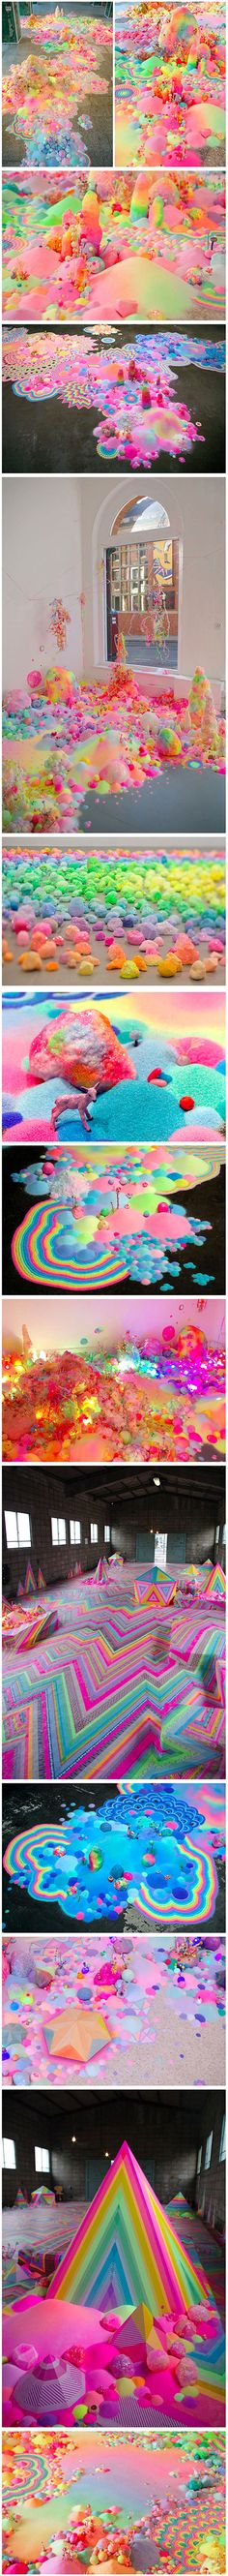 With an overpoweringly colorful and sweet visual style, Australian artist Tanya Schultz creates dazzling works of candy floor art that will make you feel like you just visited Candyland and ate the whole place down to the ground.